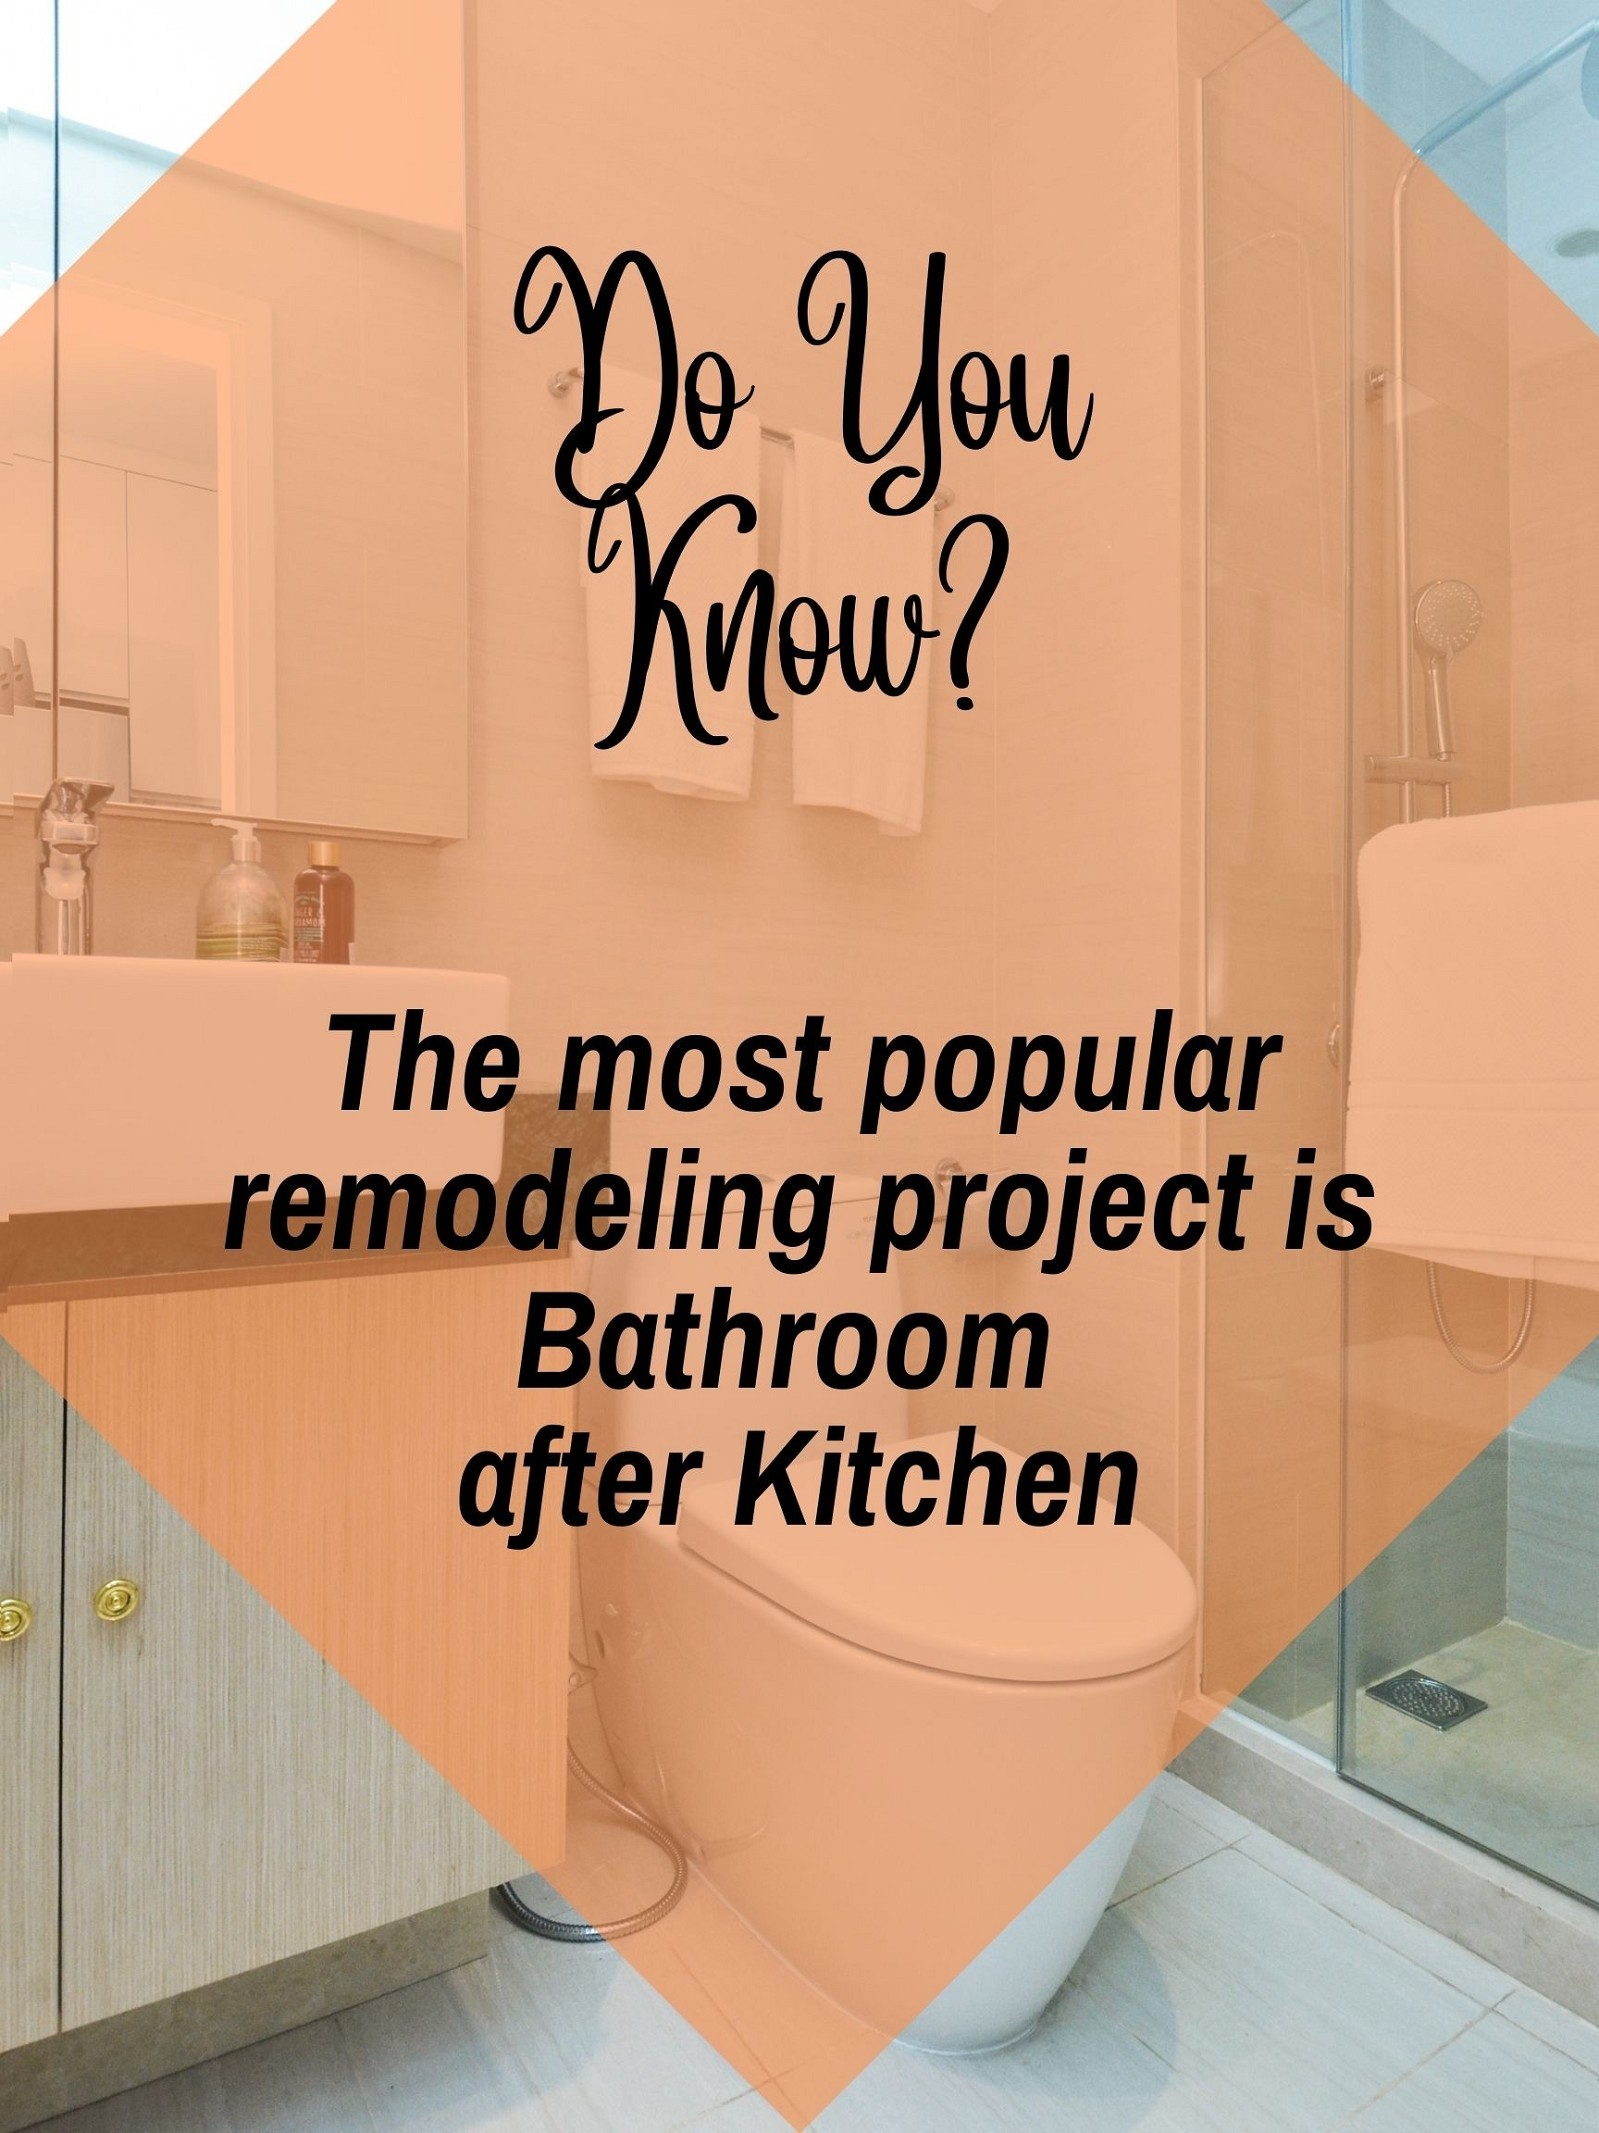 Do you know which is the most popular remodeling project?